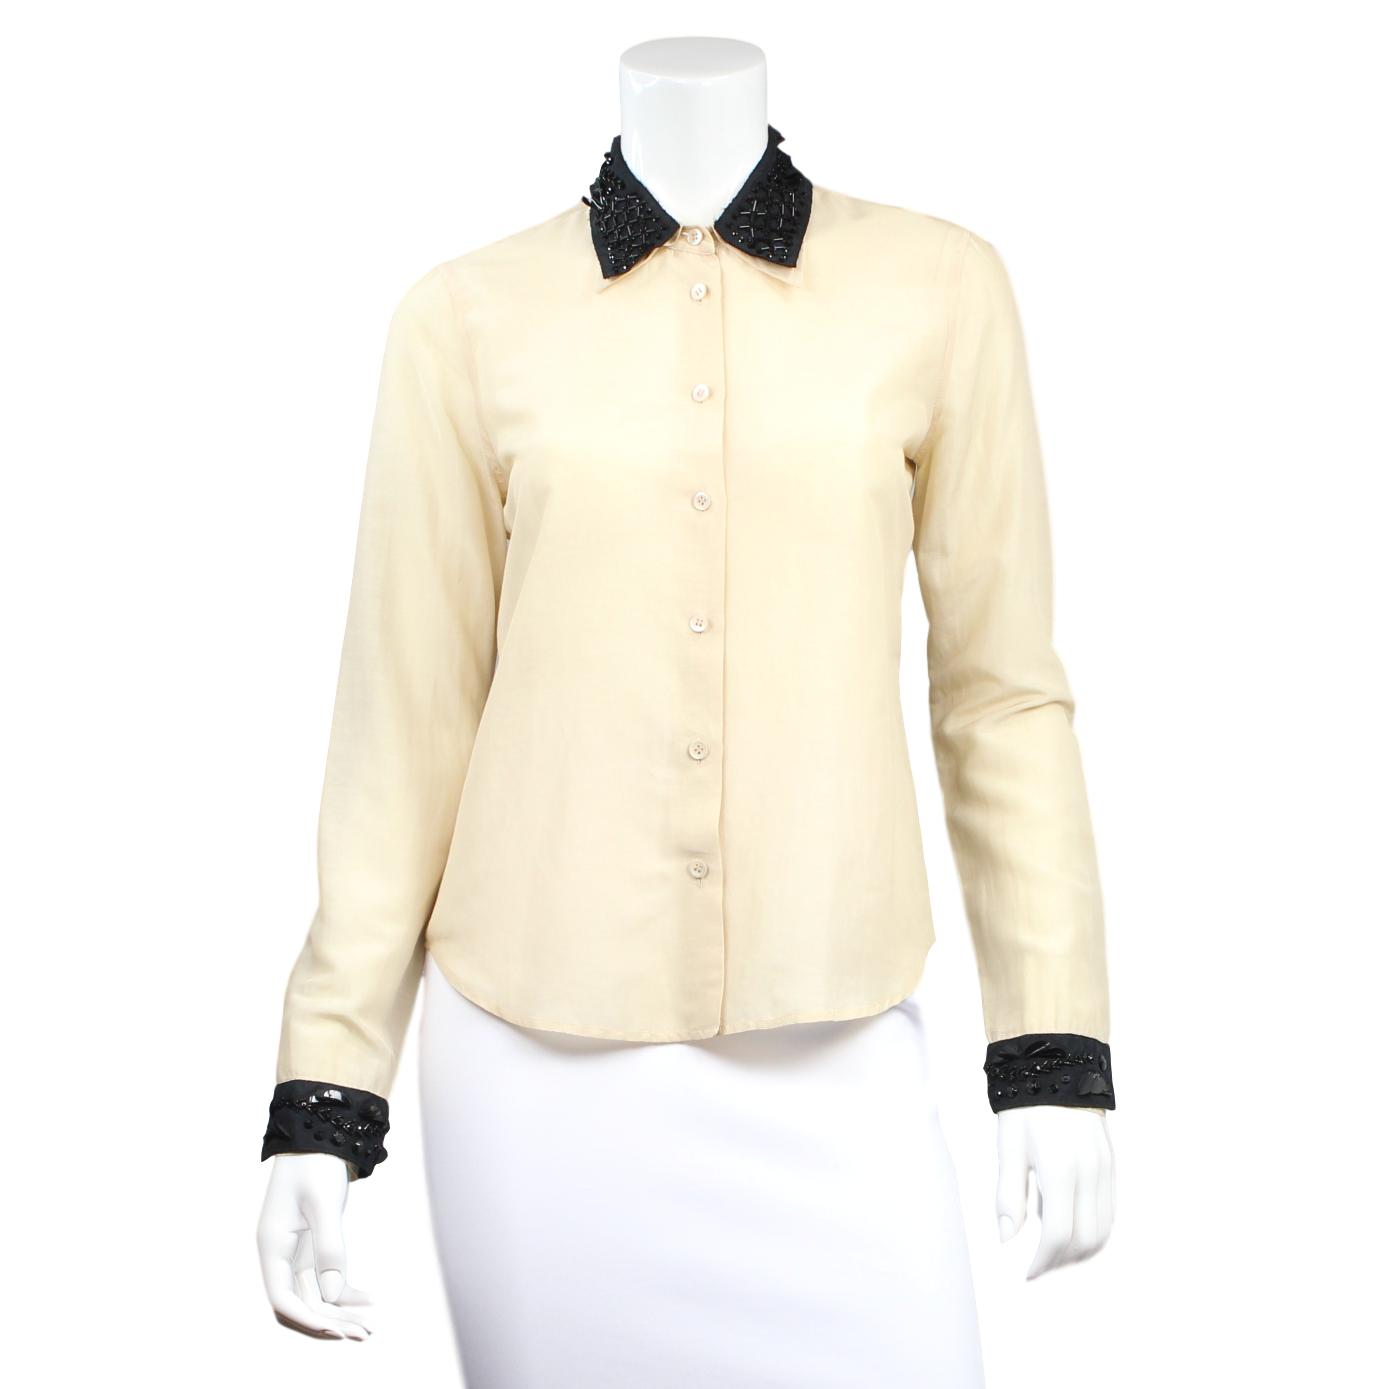 Prada Tie Front Button-Up Discount Enjoy Get Authentic Sale Online Buy Cheap How Much zXb9WW2